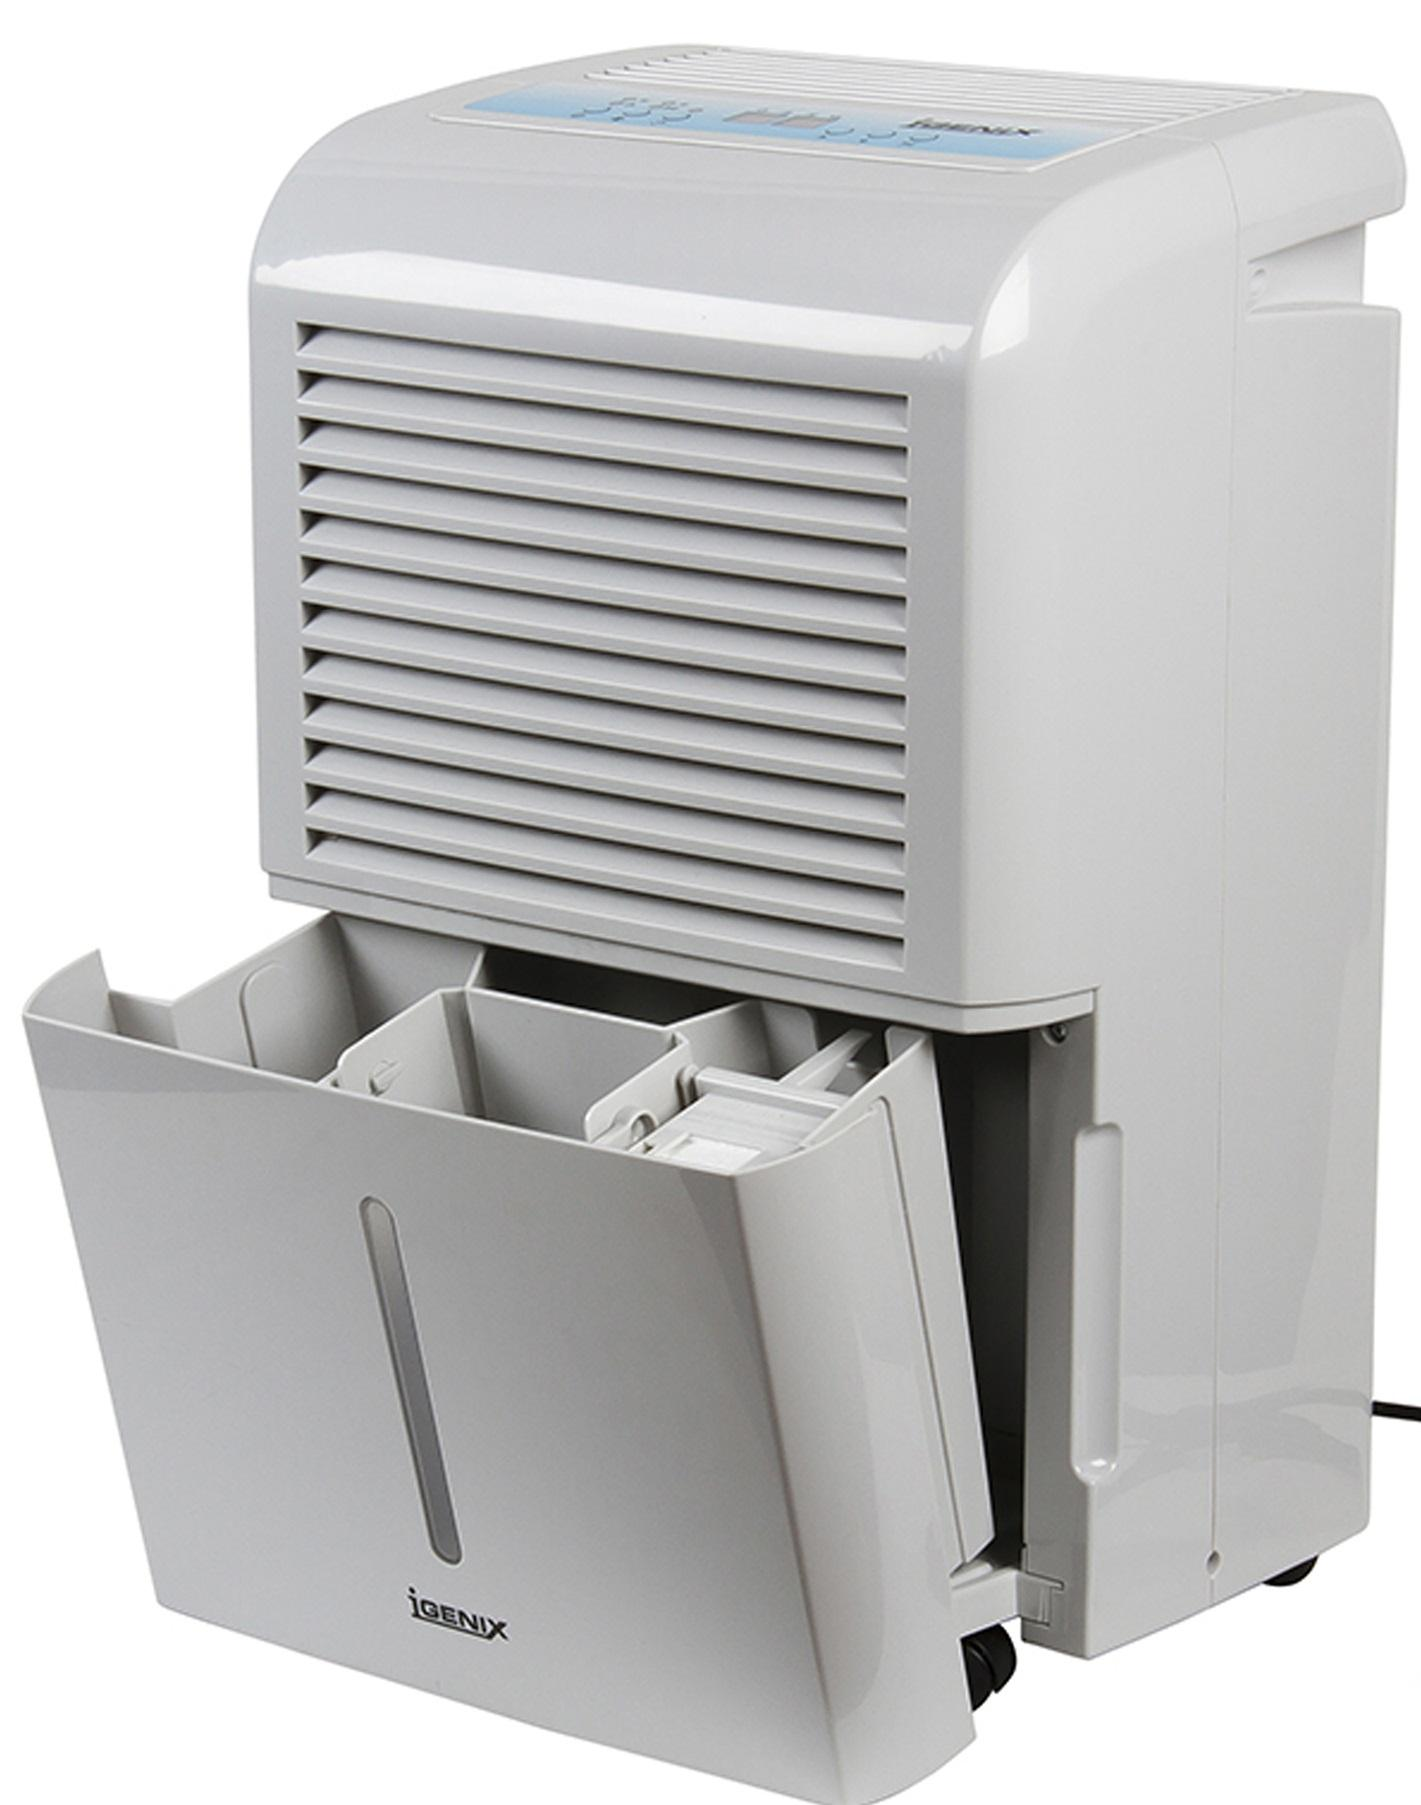 Dehumidifier 740 W 50 L White: Amazon.co.uk: Kitchen & Home #4D697E